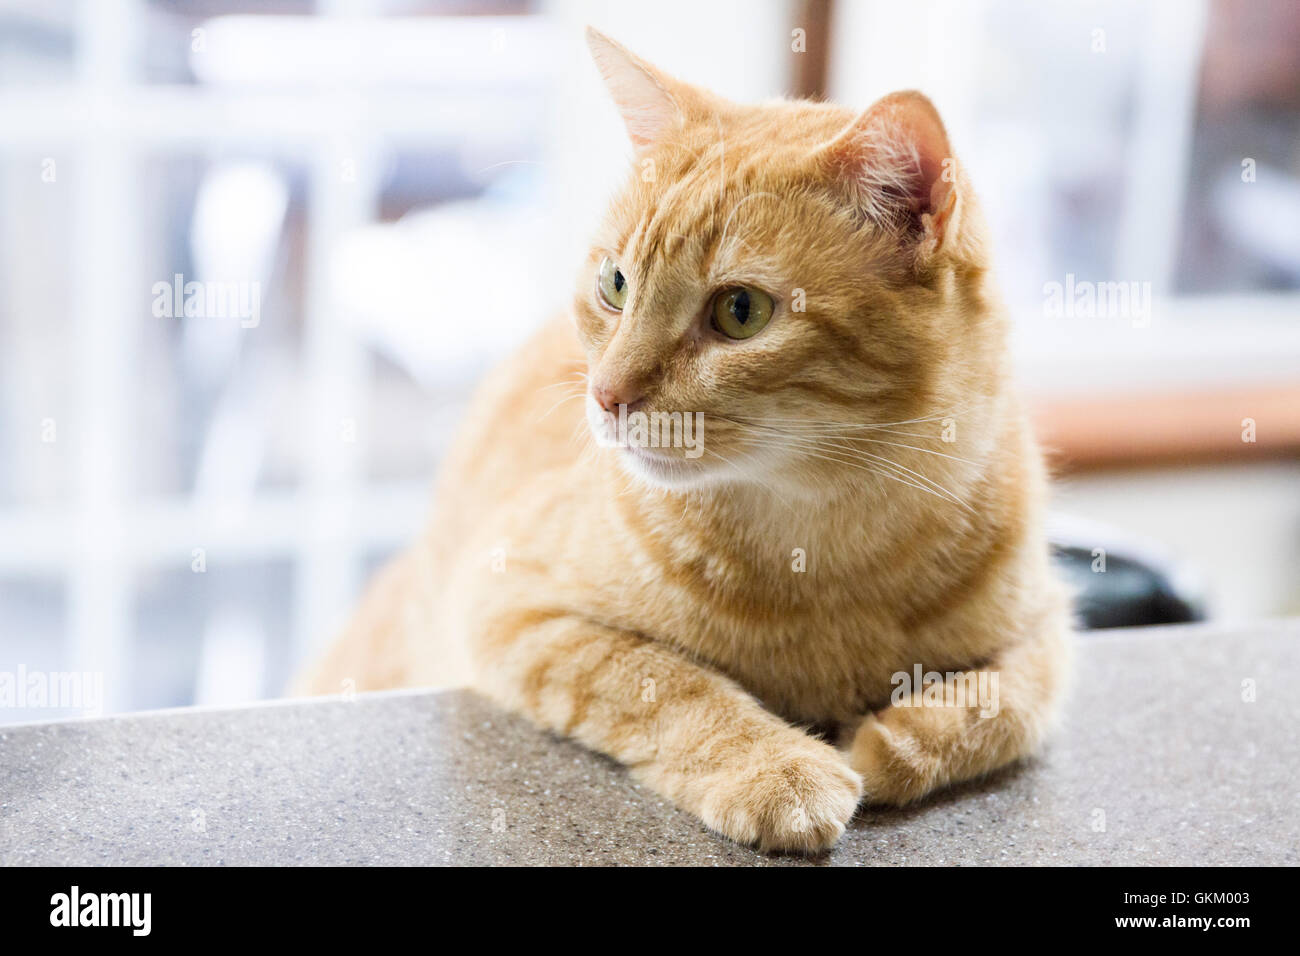 Tabby cat leaning on the counter - Stock Image